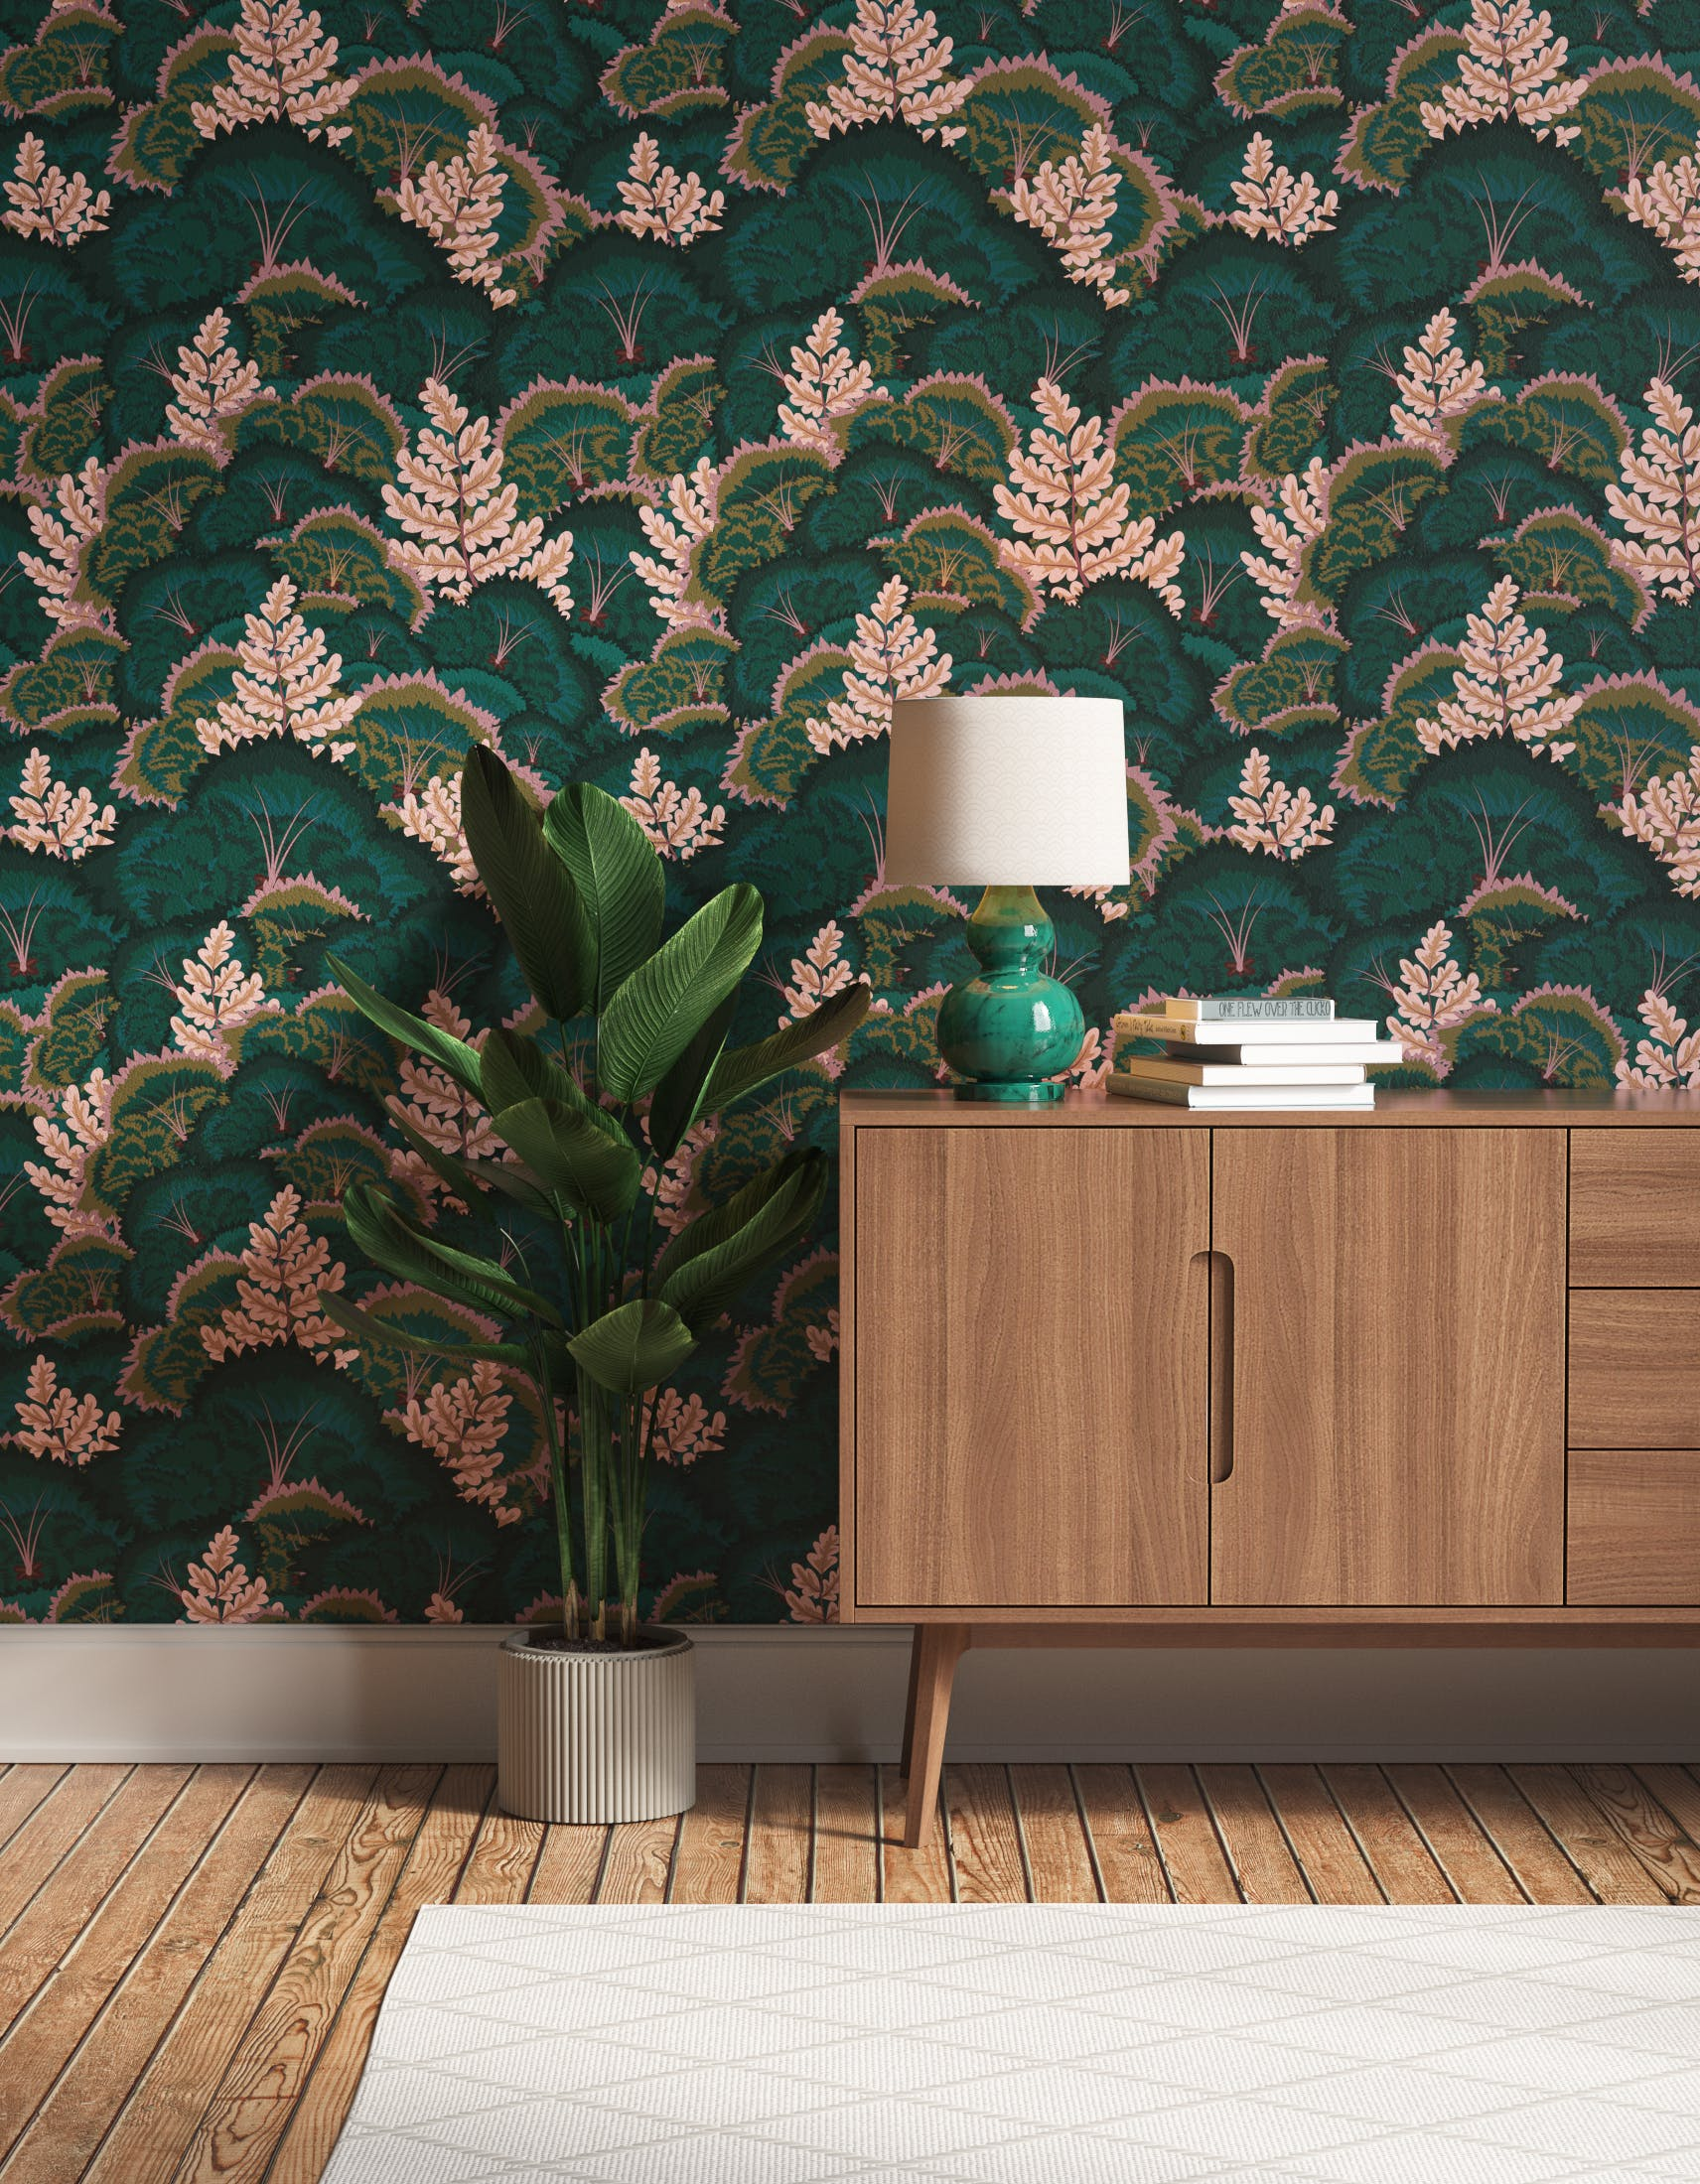 Hallway decorated with Lick Electric Poppies 02, a green floral wallpaper